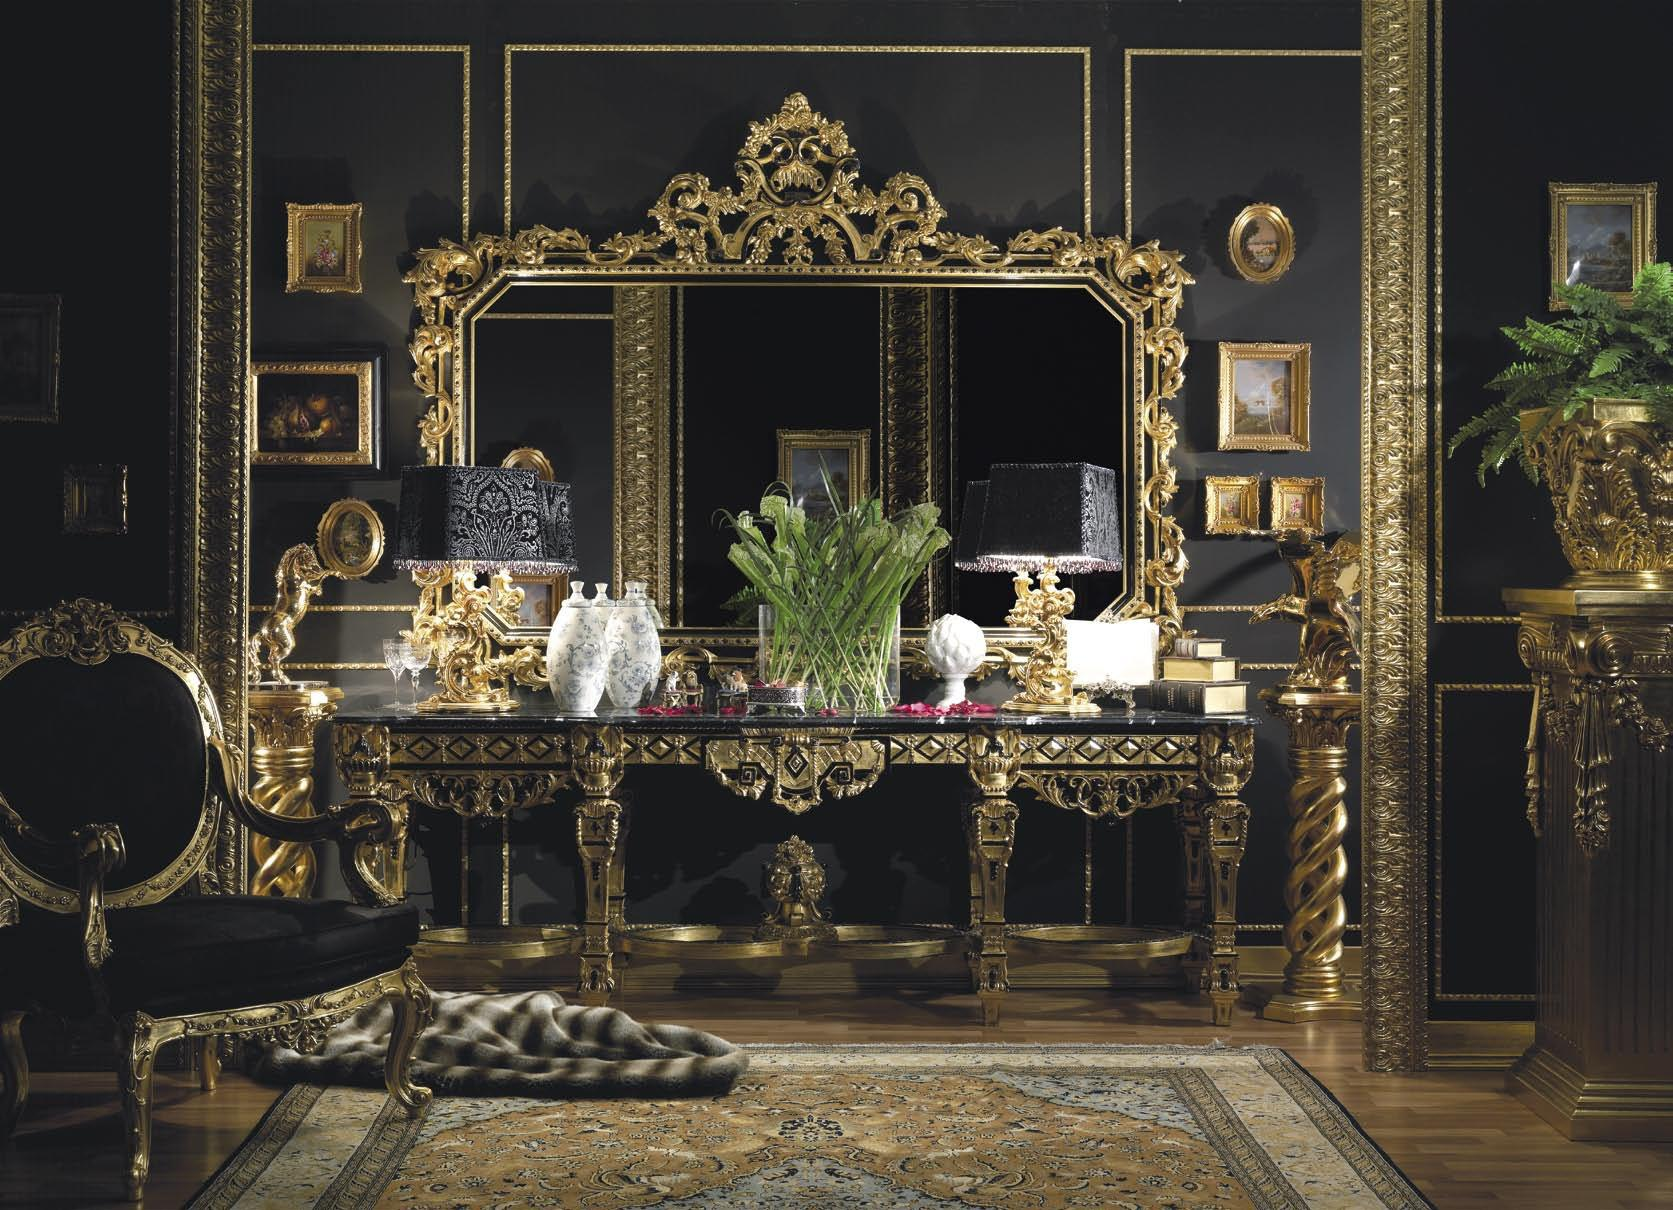 Italian Interior Design Company Names Of Hand Carved Italian Console In Gold Leaf Finishtop And